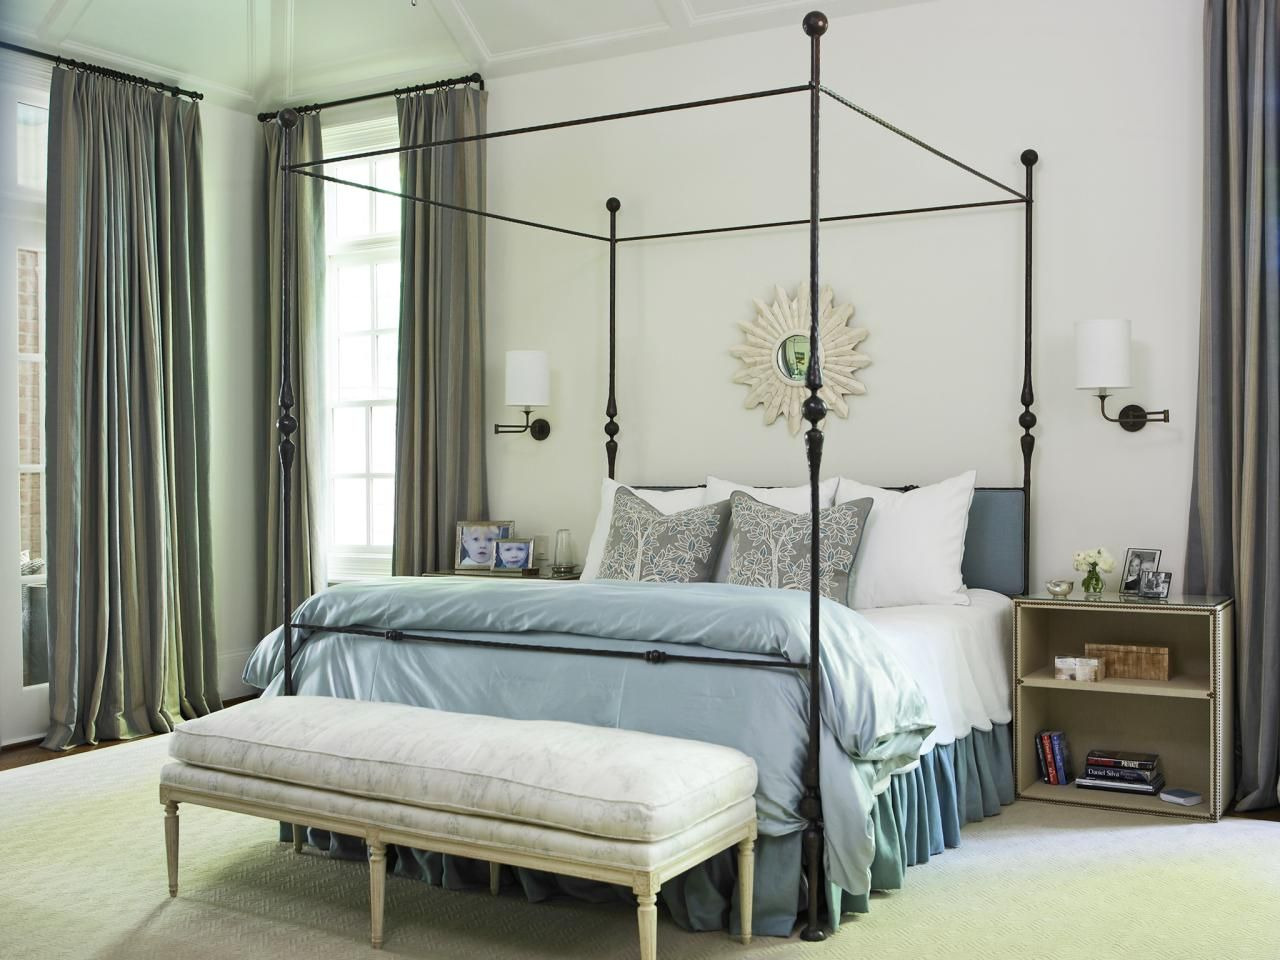 20 Smart Ideas For Small Bedrooms With Bed Choices Storage